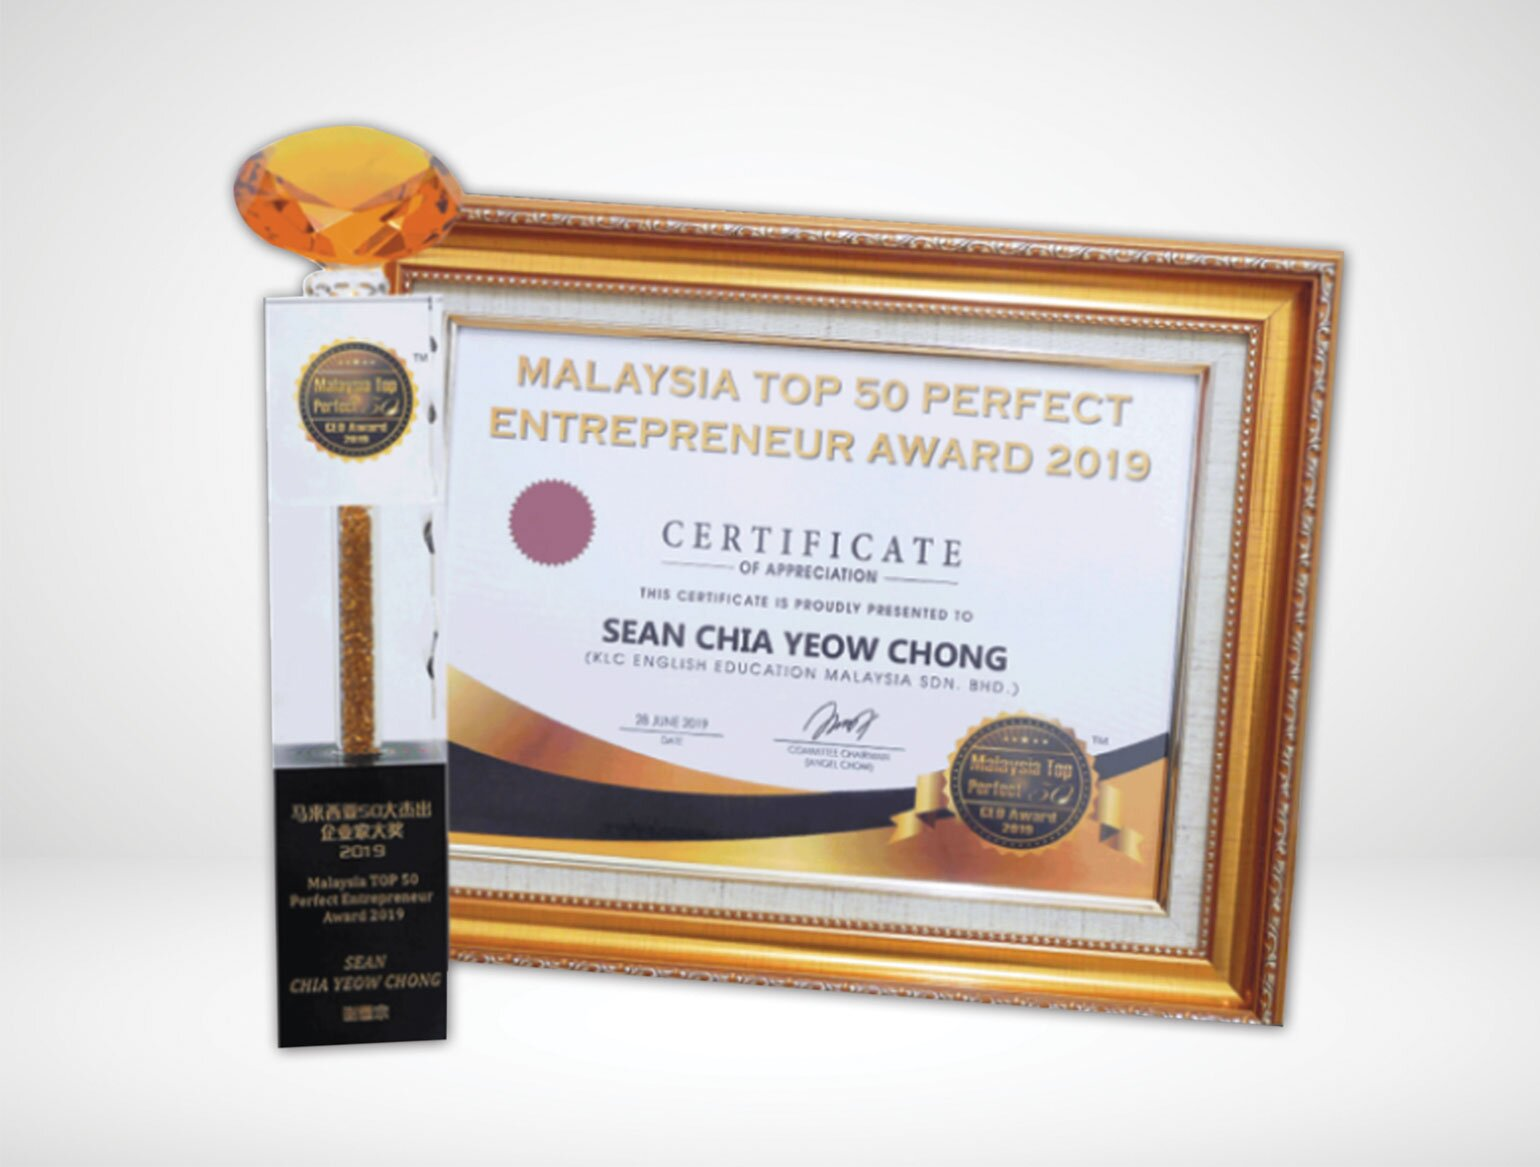 Malaysia Top 50 Perfect CEO Award